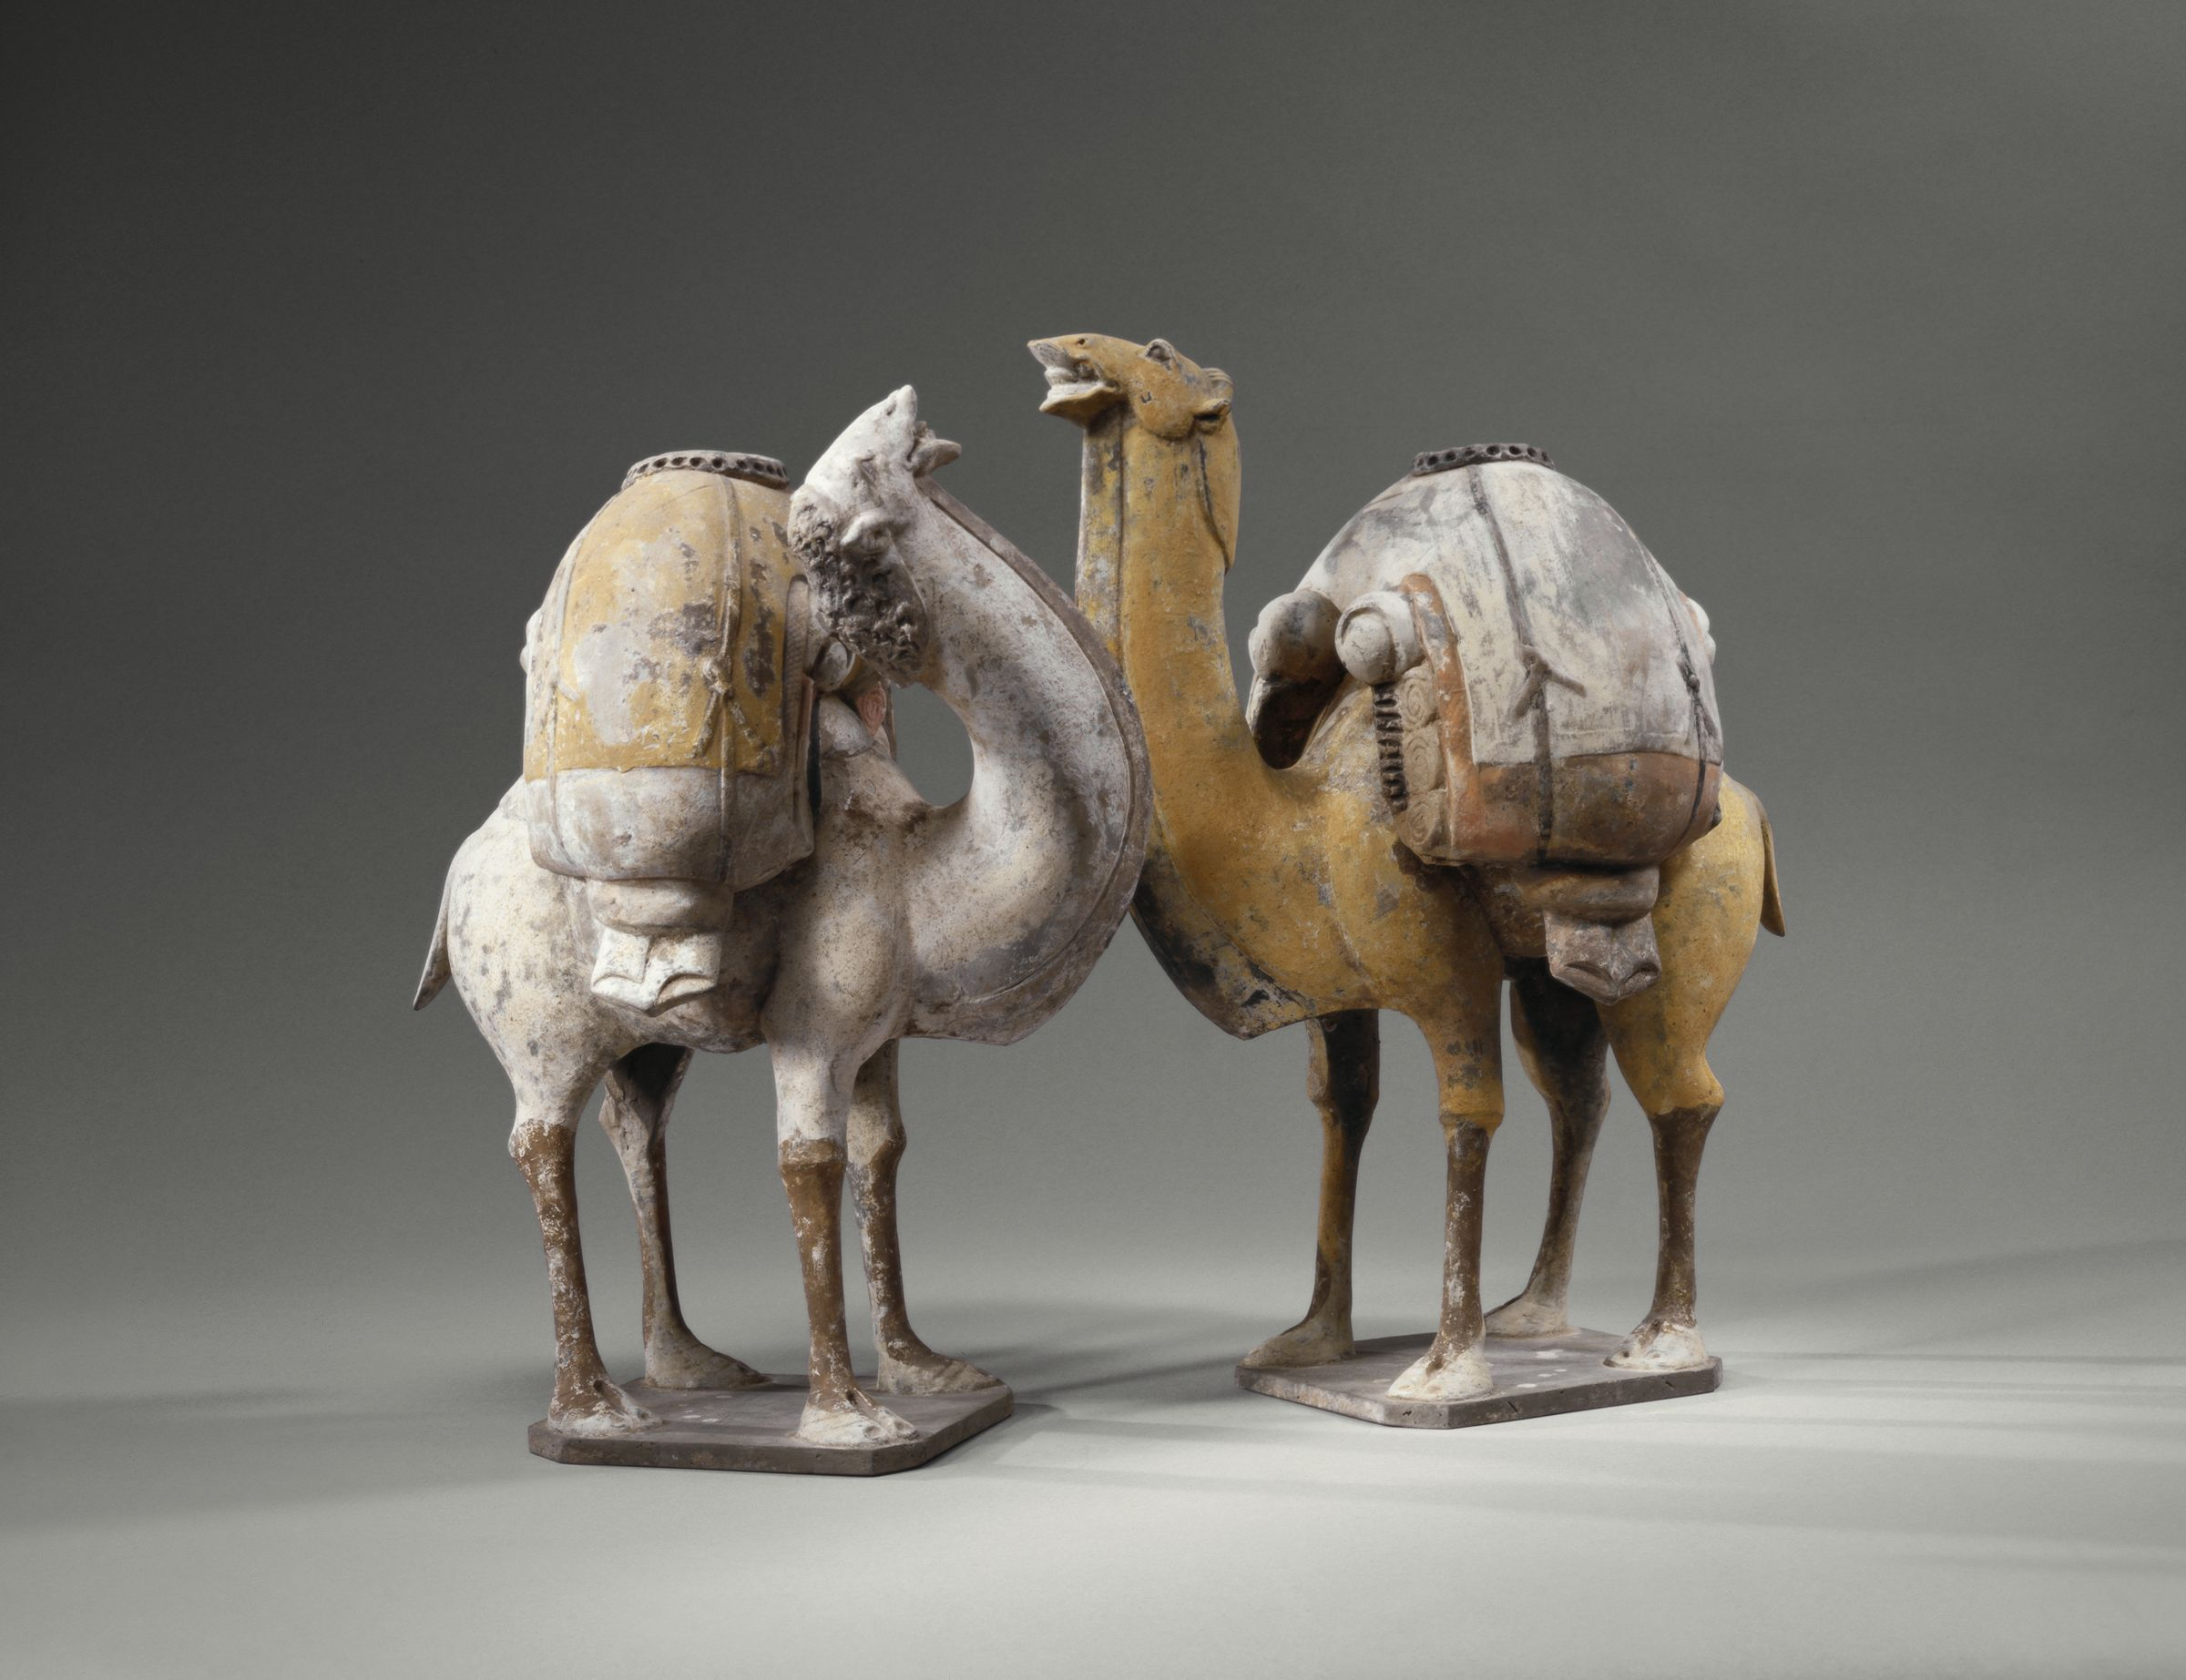 Two Standing, Braying Camels, One Buff, One White, Their Backs Laden With Goods